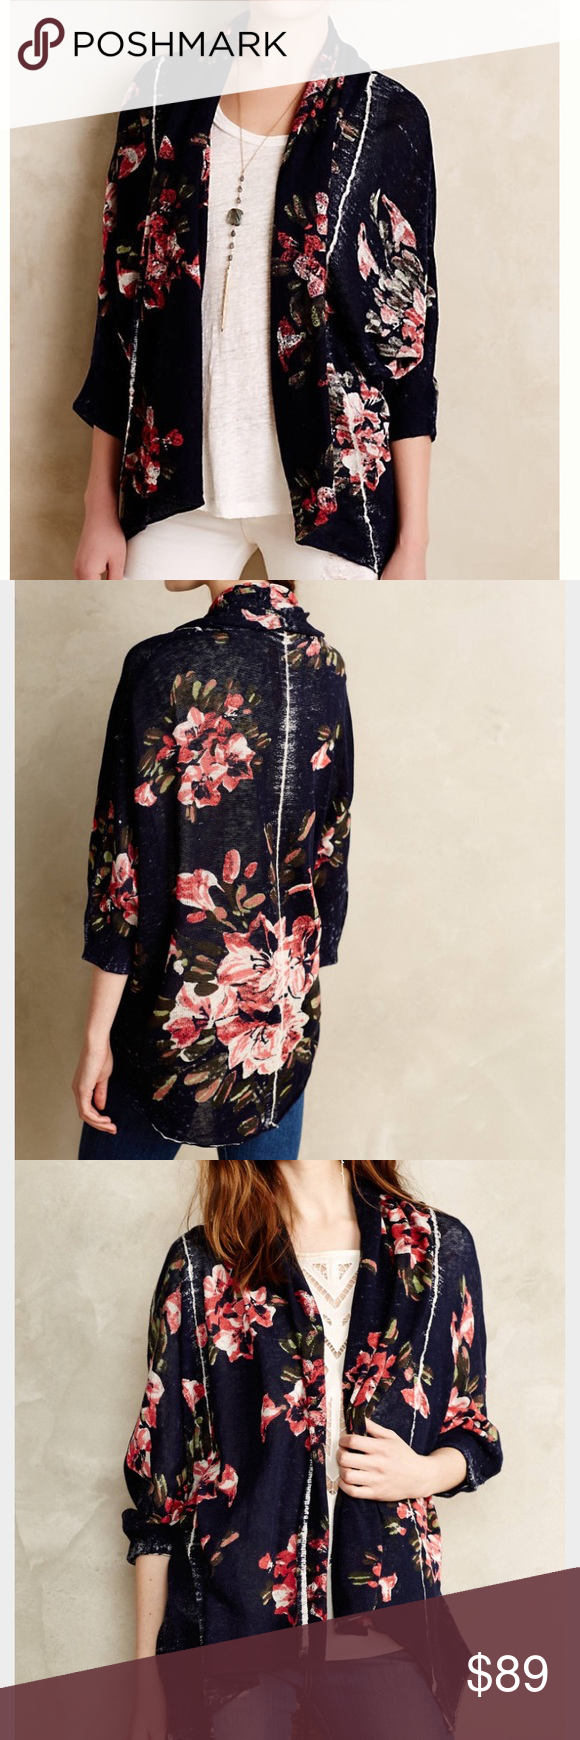 Anthro Knitted & Knotted Blooming Dolman Cardigan EUC, worn once, navy floral print, loose draped fit Anthropologie Sweaters Cardigans